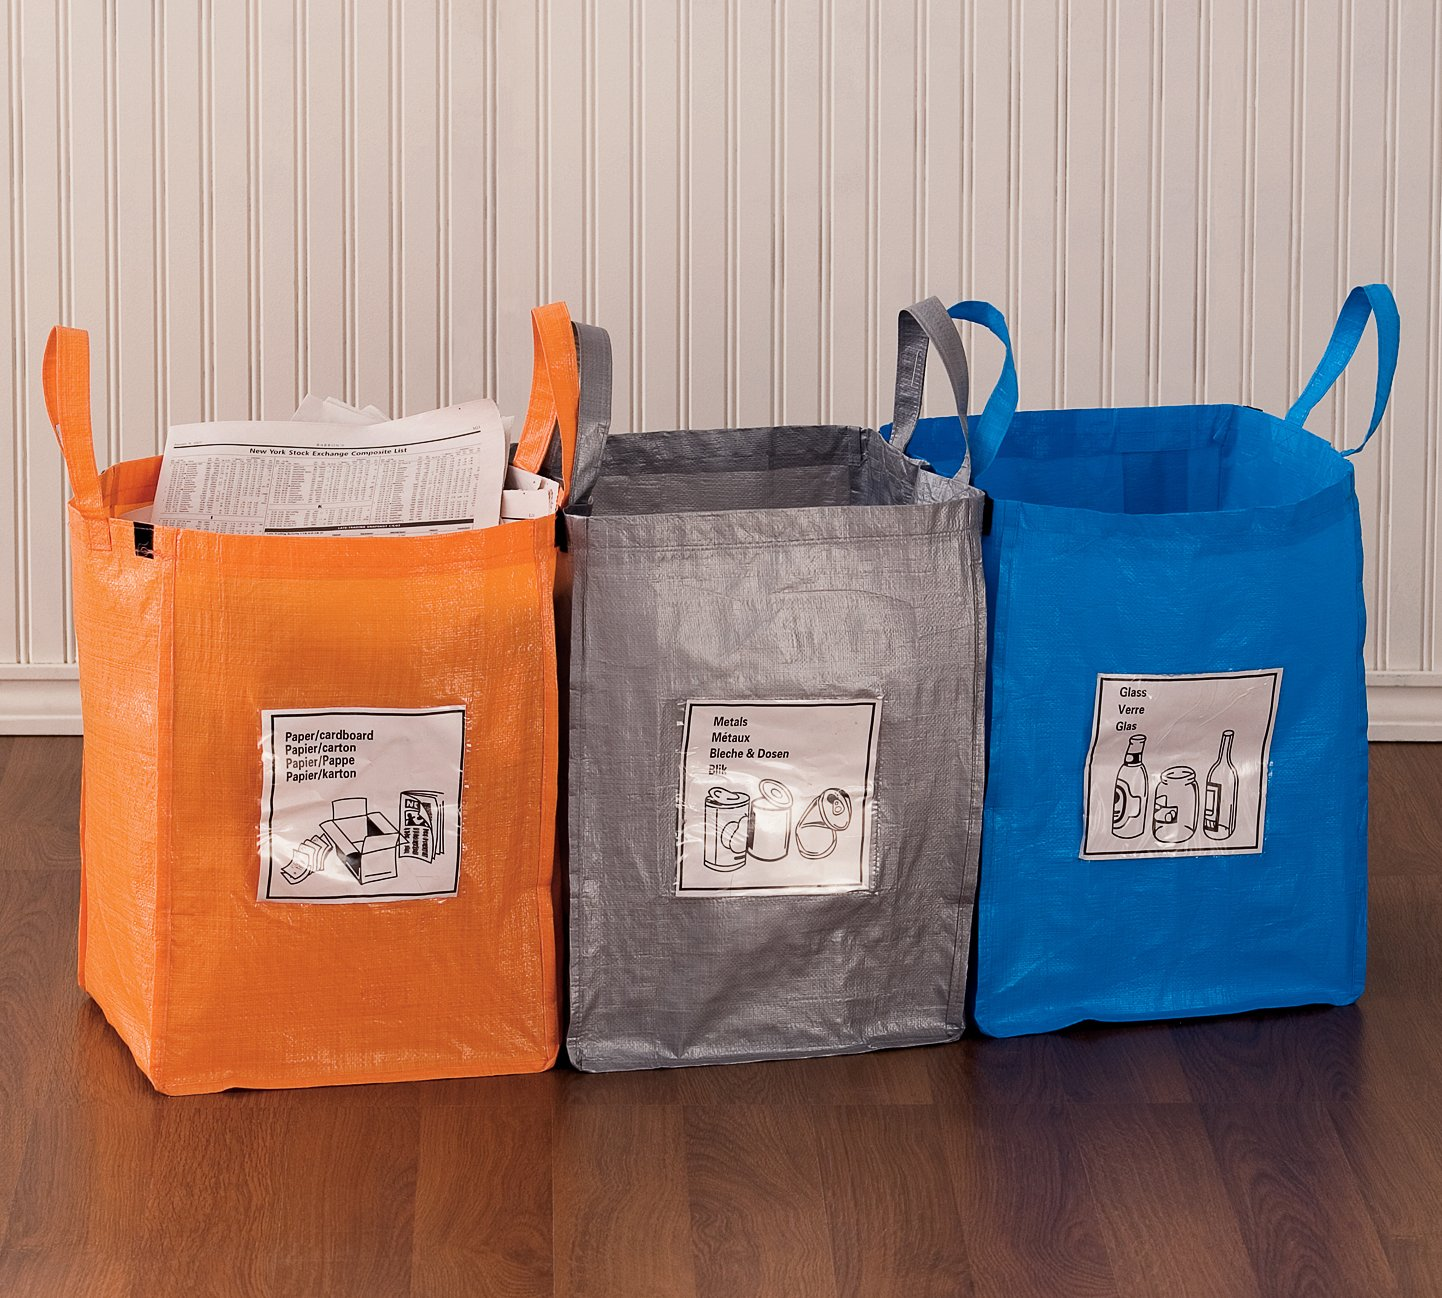 Recycling Bins For Home Use Images